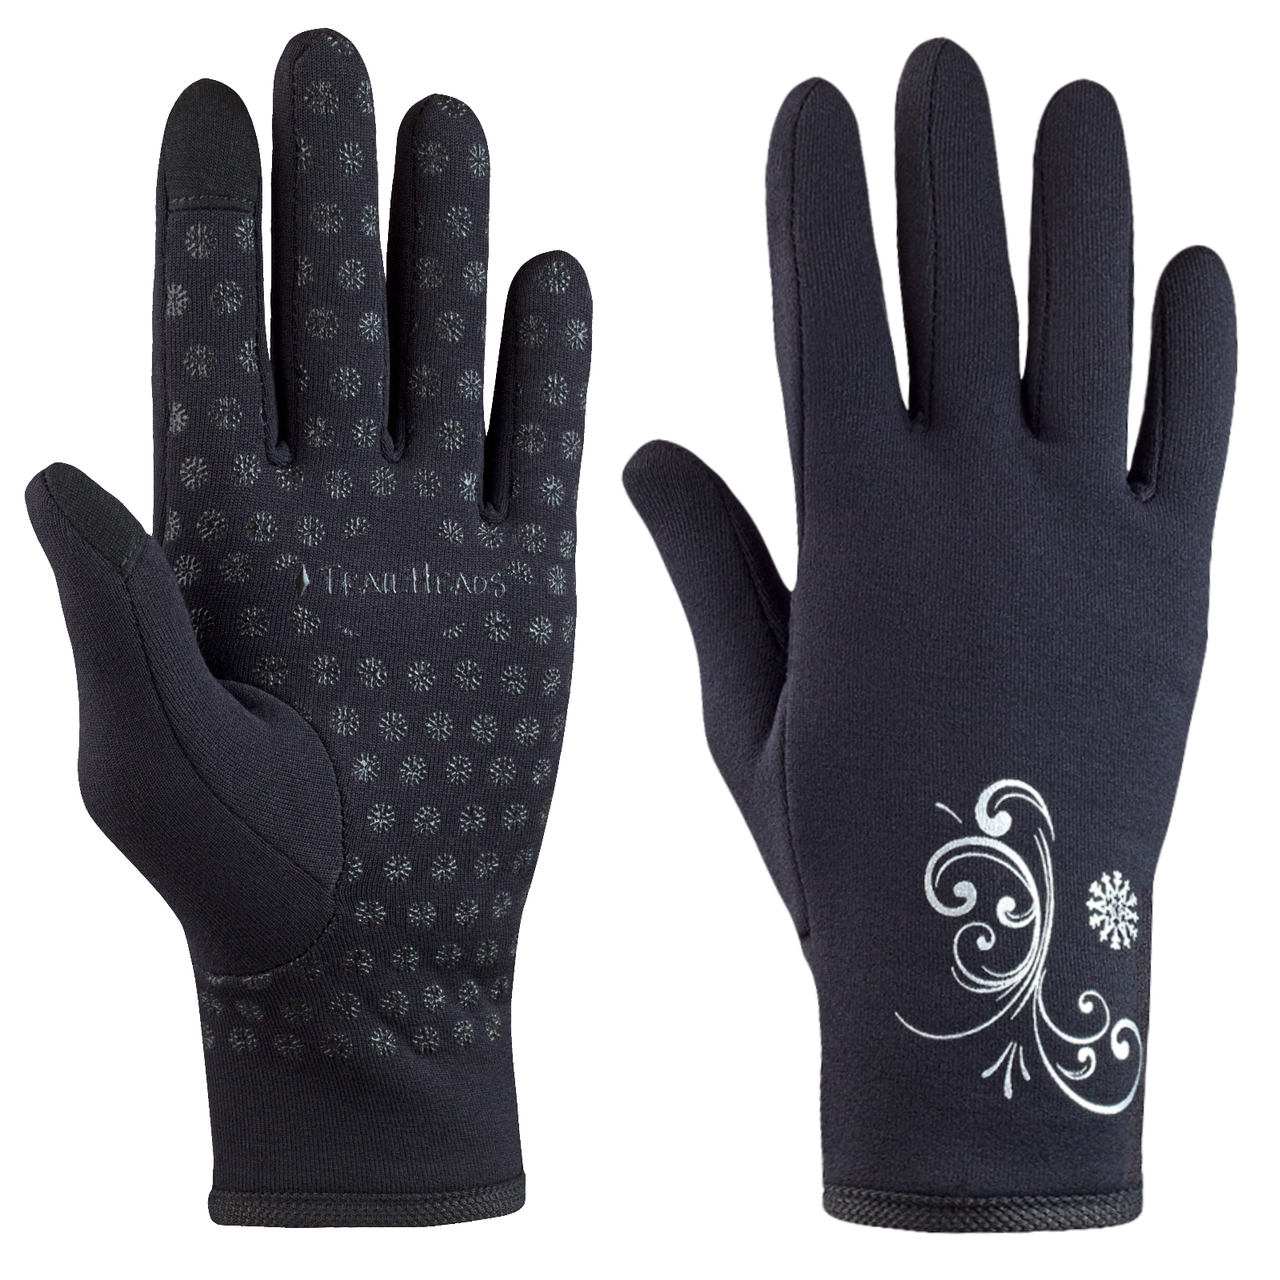 Trailheads Running Gloves - Perfect for running and for hiking. Thin and stretchy, they are the perfect protection on a windy hike.